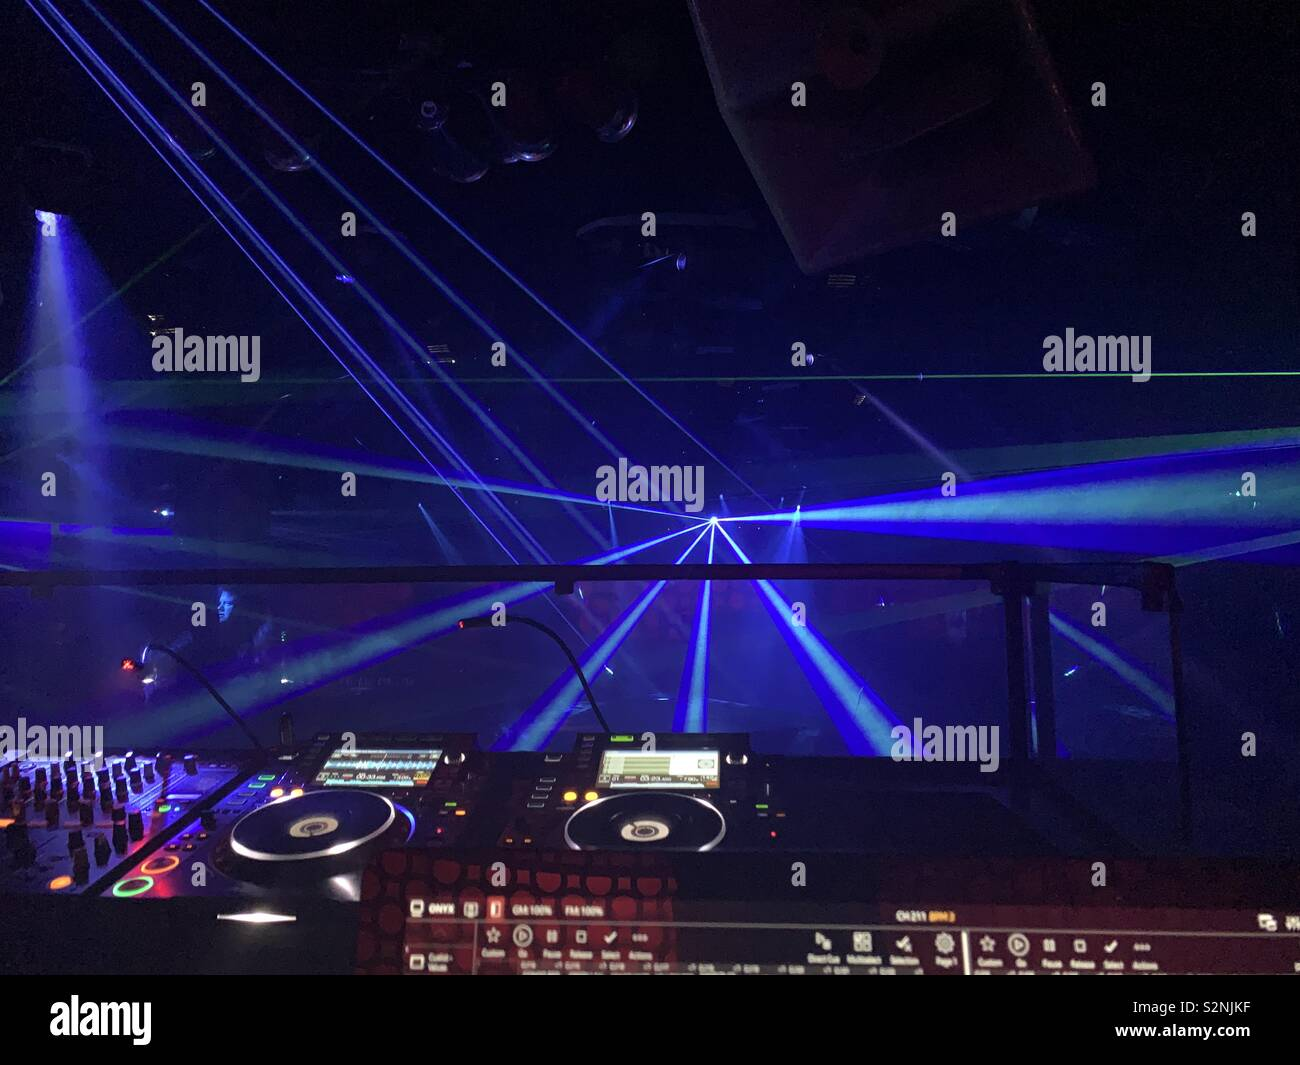 EDM lasers at a nightclub. - Stock Image